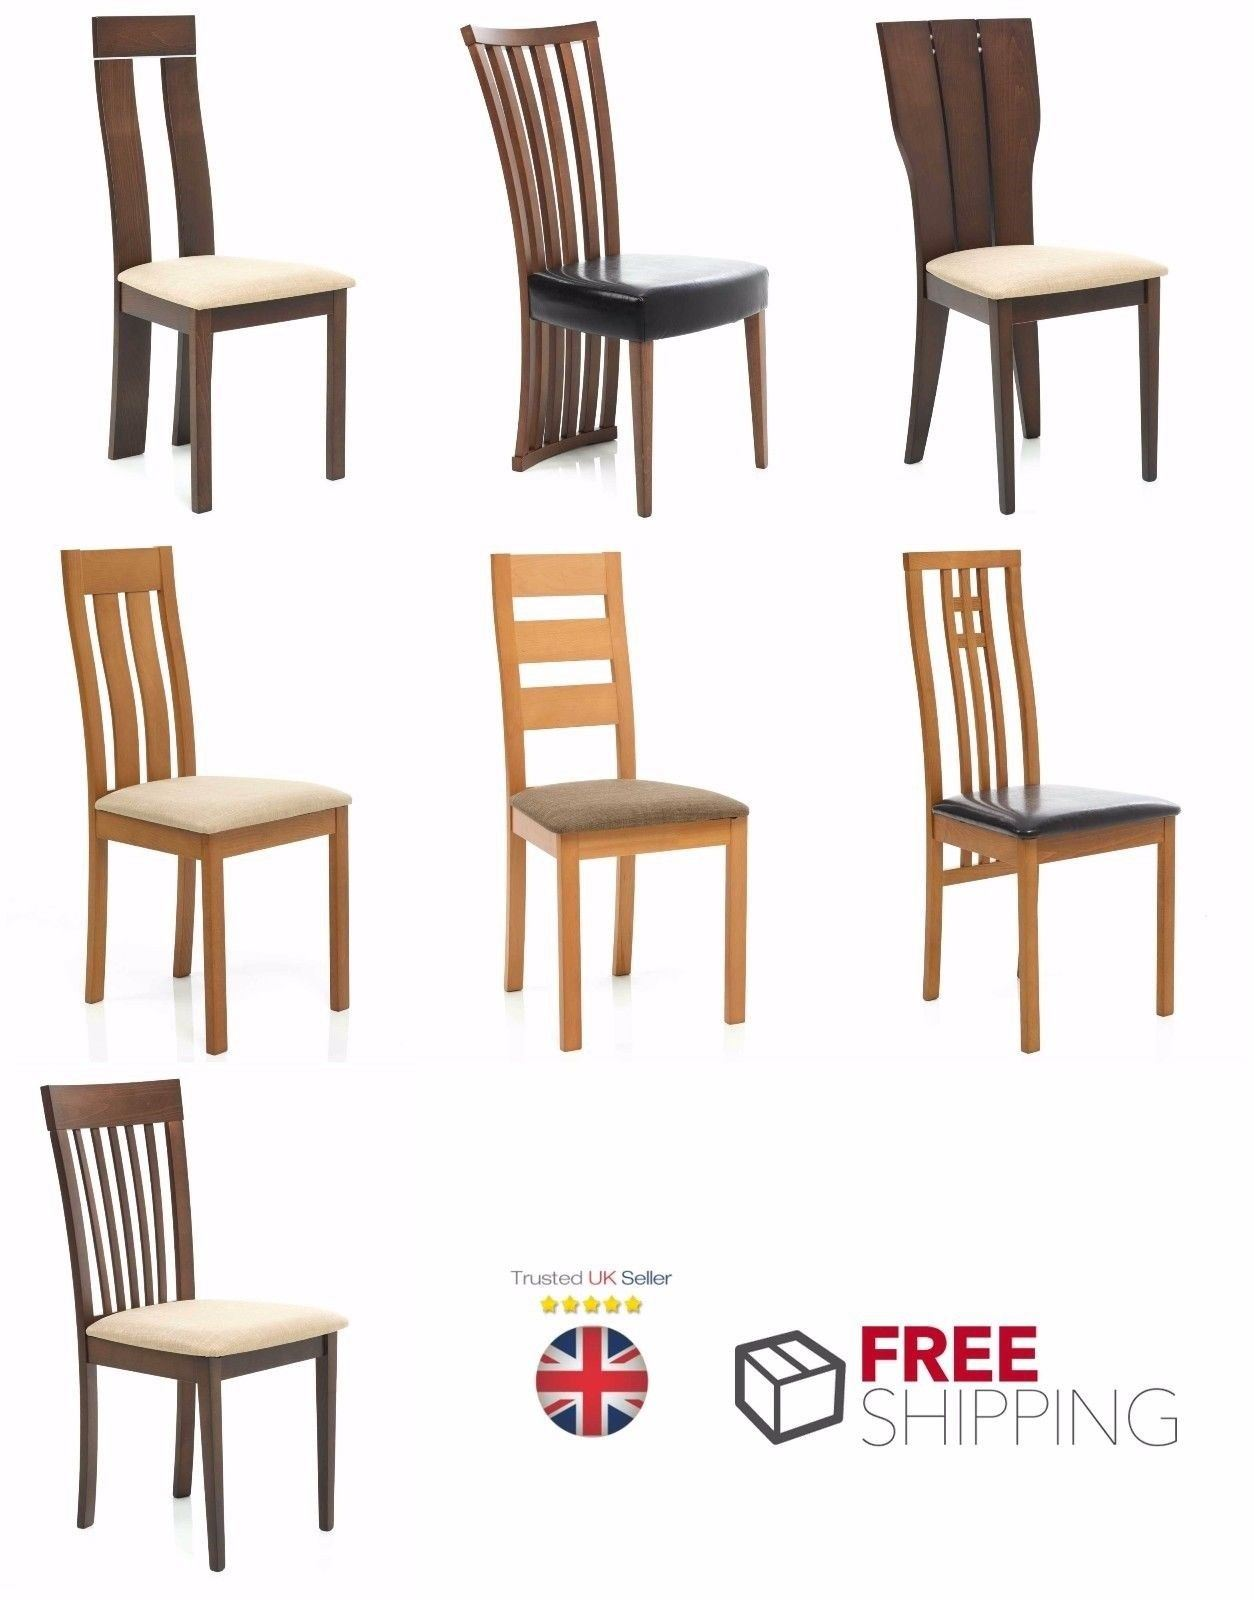 Details about 6x Dining Chairs Solid Wood Leather Foamed Seat Walnut Oak  Kitchen Chair